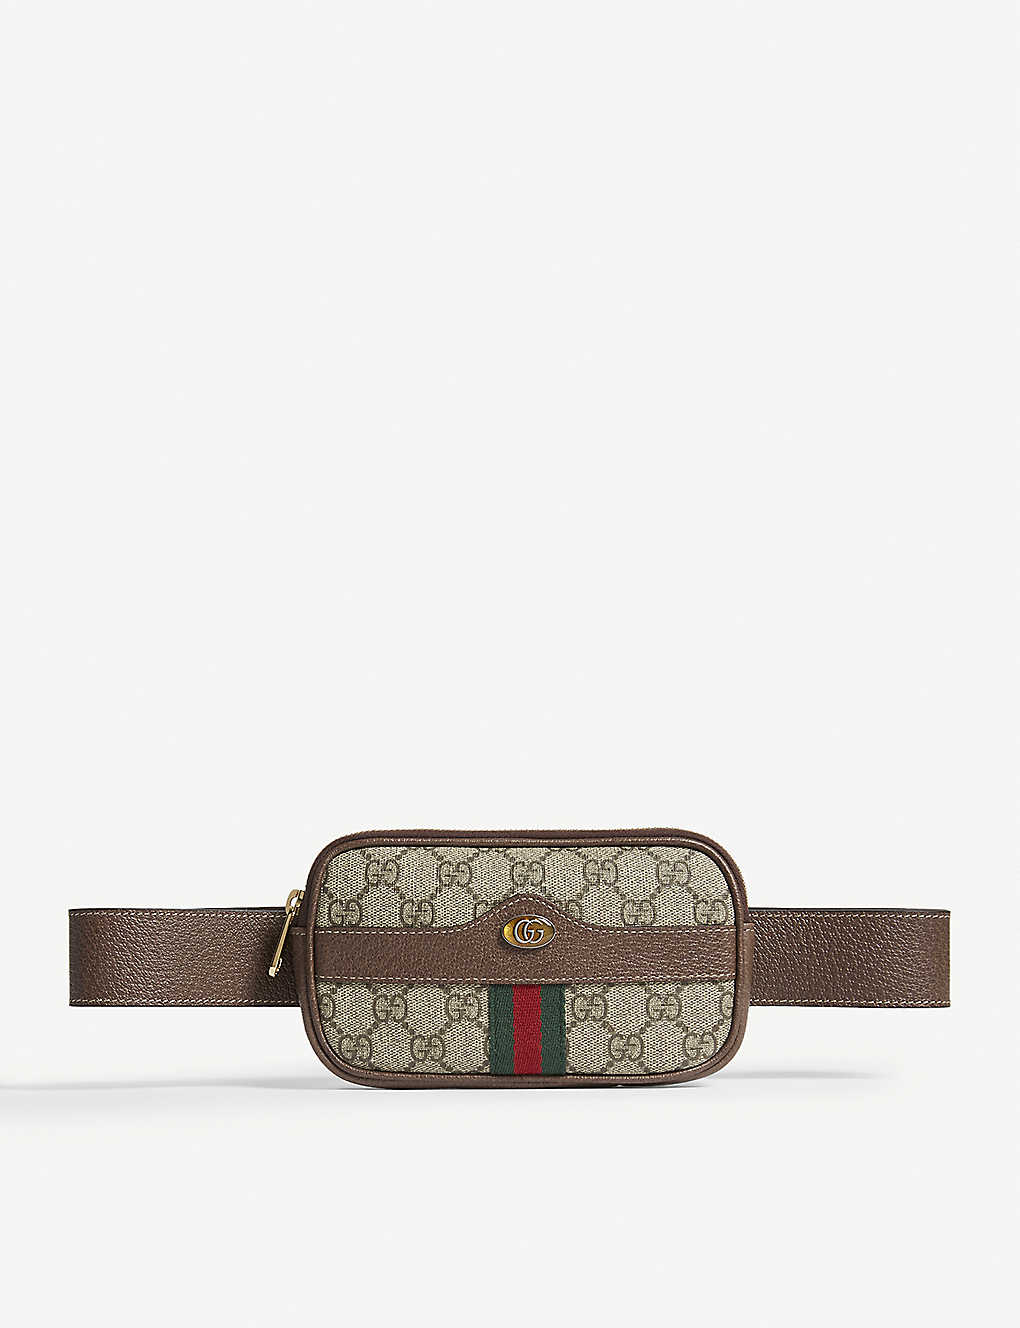 3a7bd8e7dd9a GUCCI - Ophidia mini GG Supreme belt bag | Selfridges.com